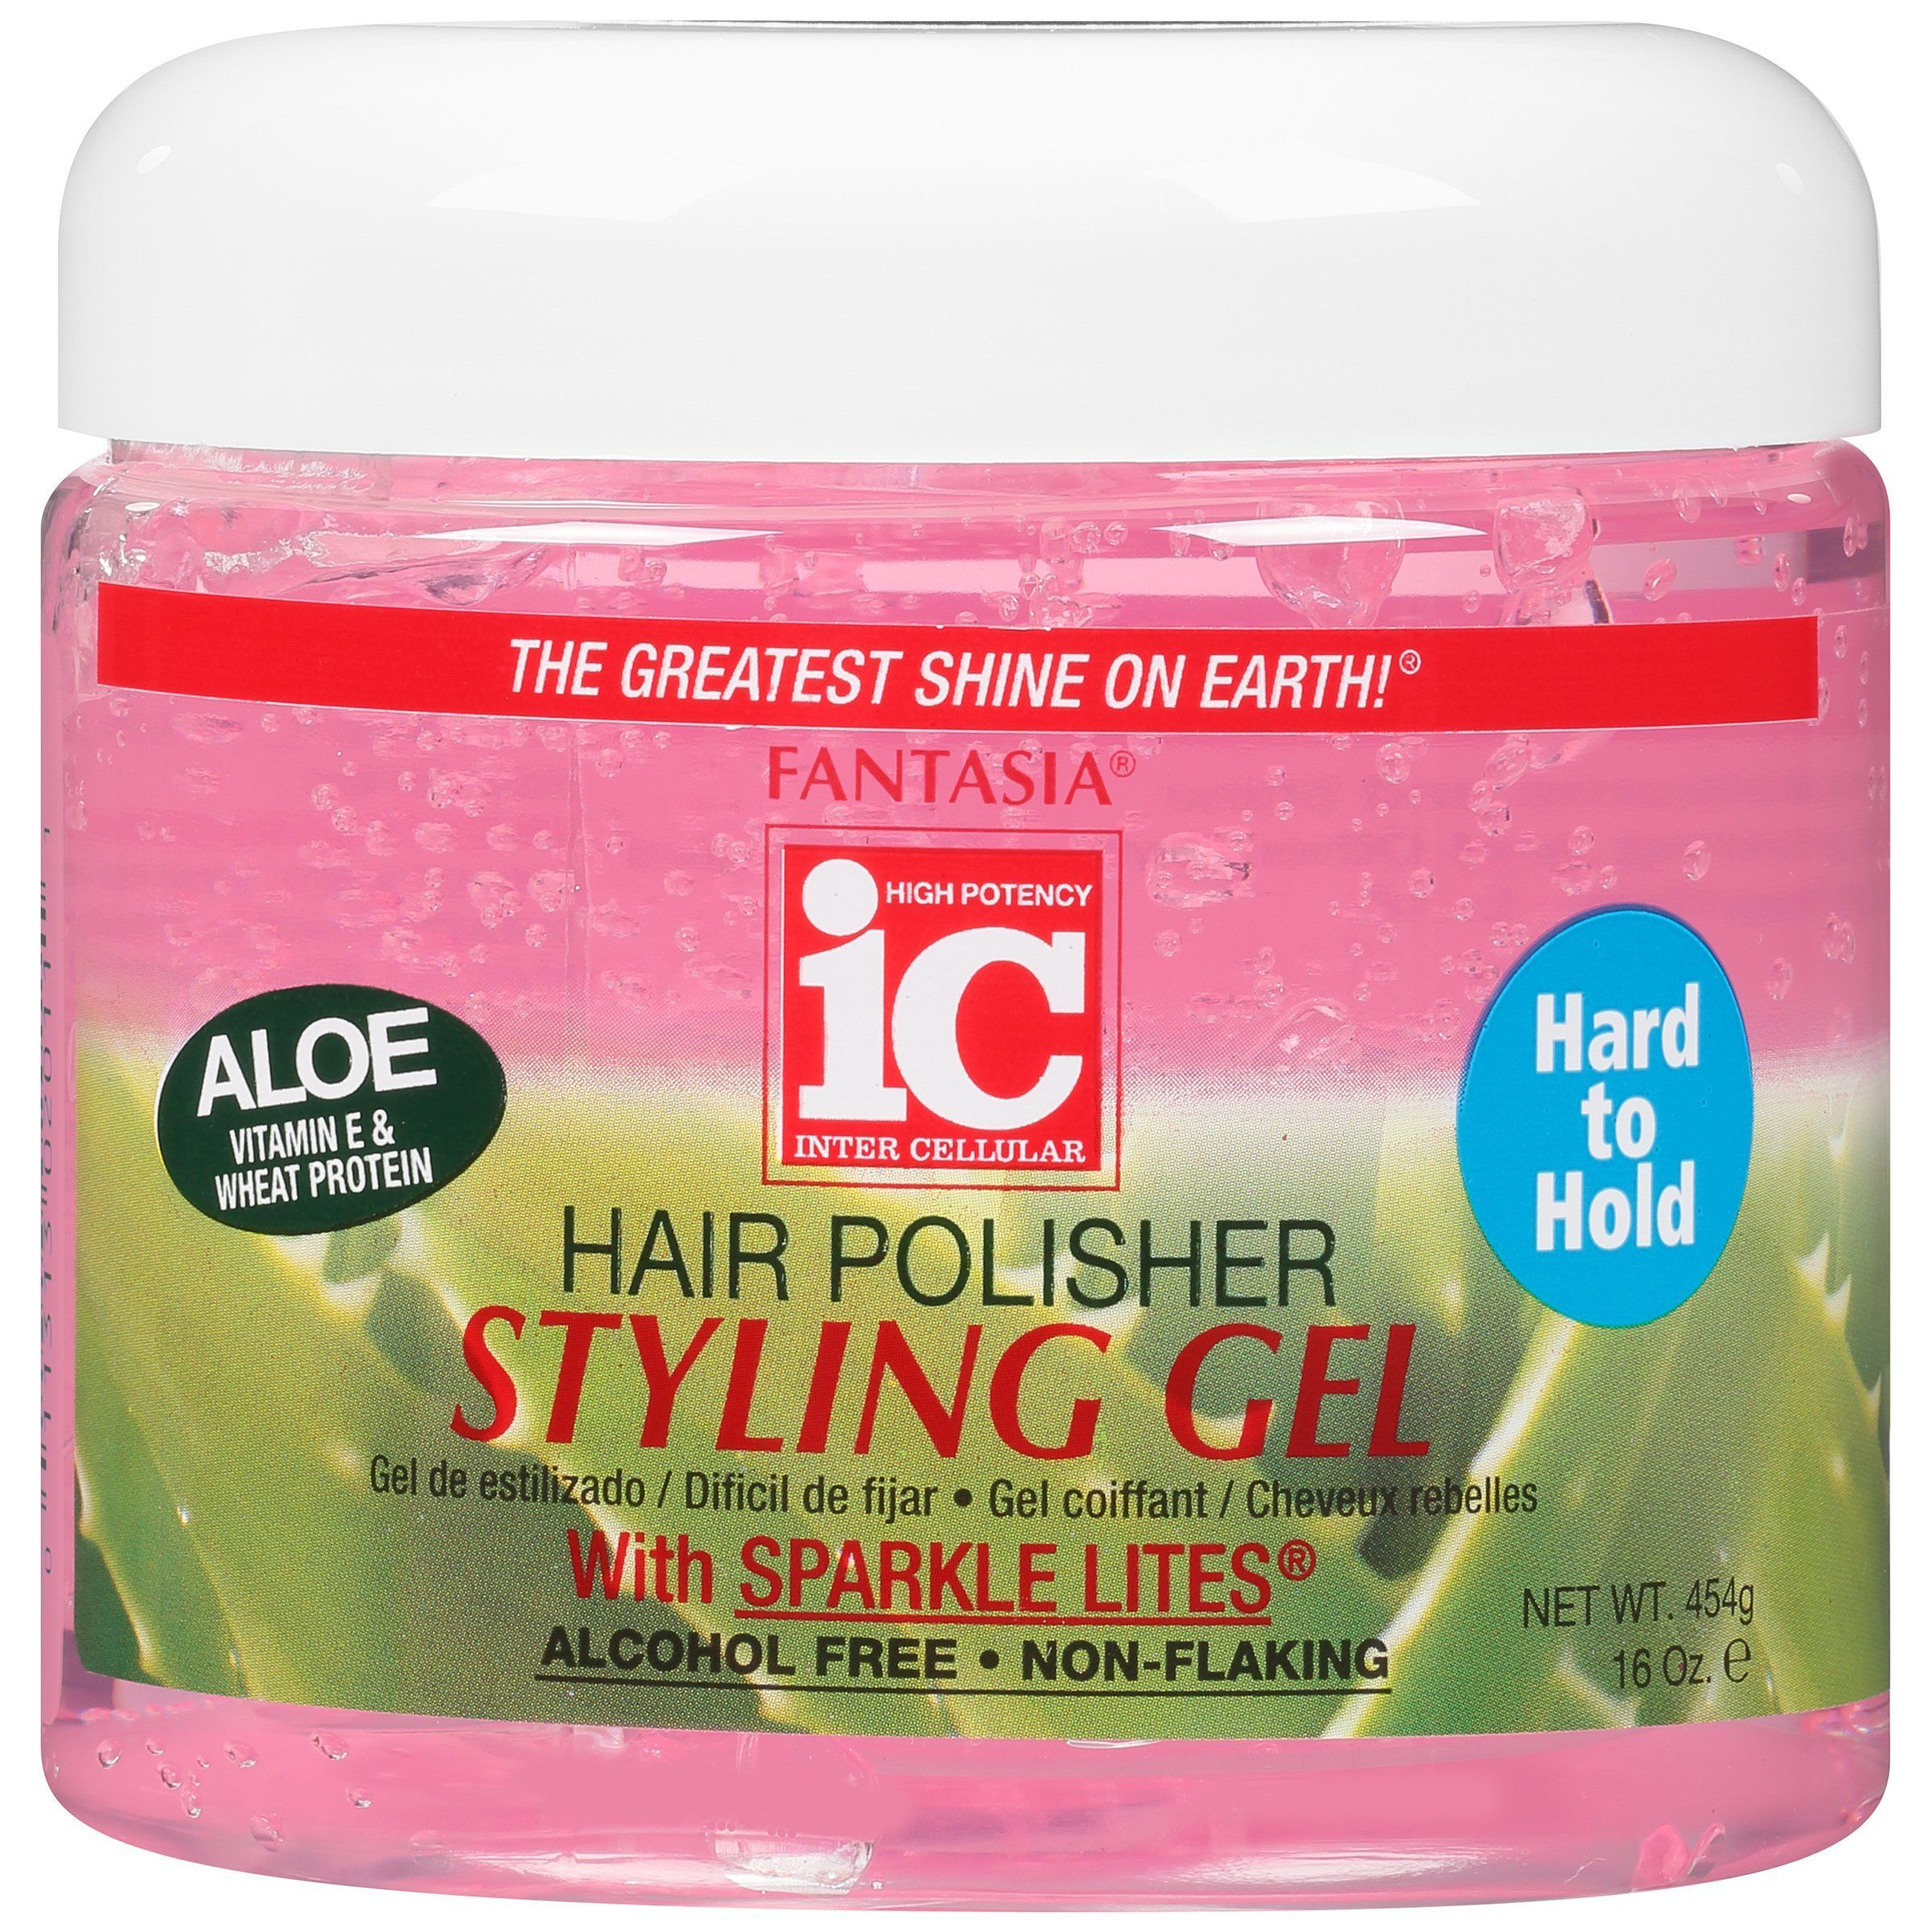 IC Fantasia Hair Polisher Styling Gel With Sparkle Lites - Pink,16oz